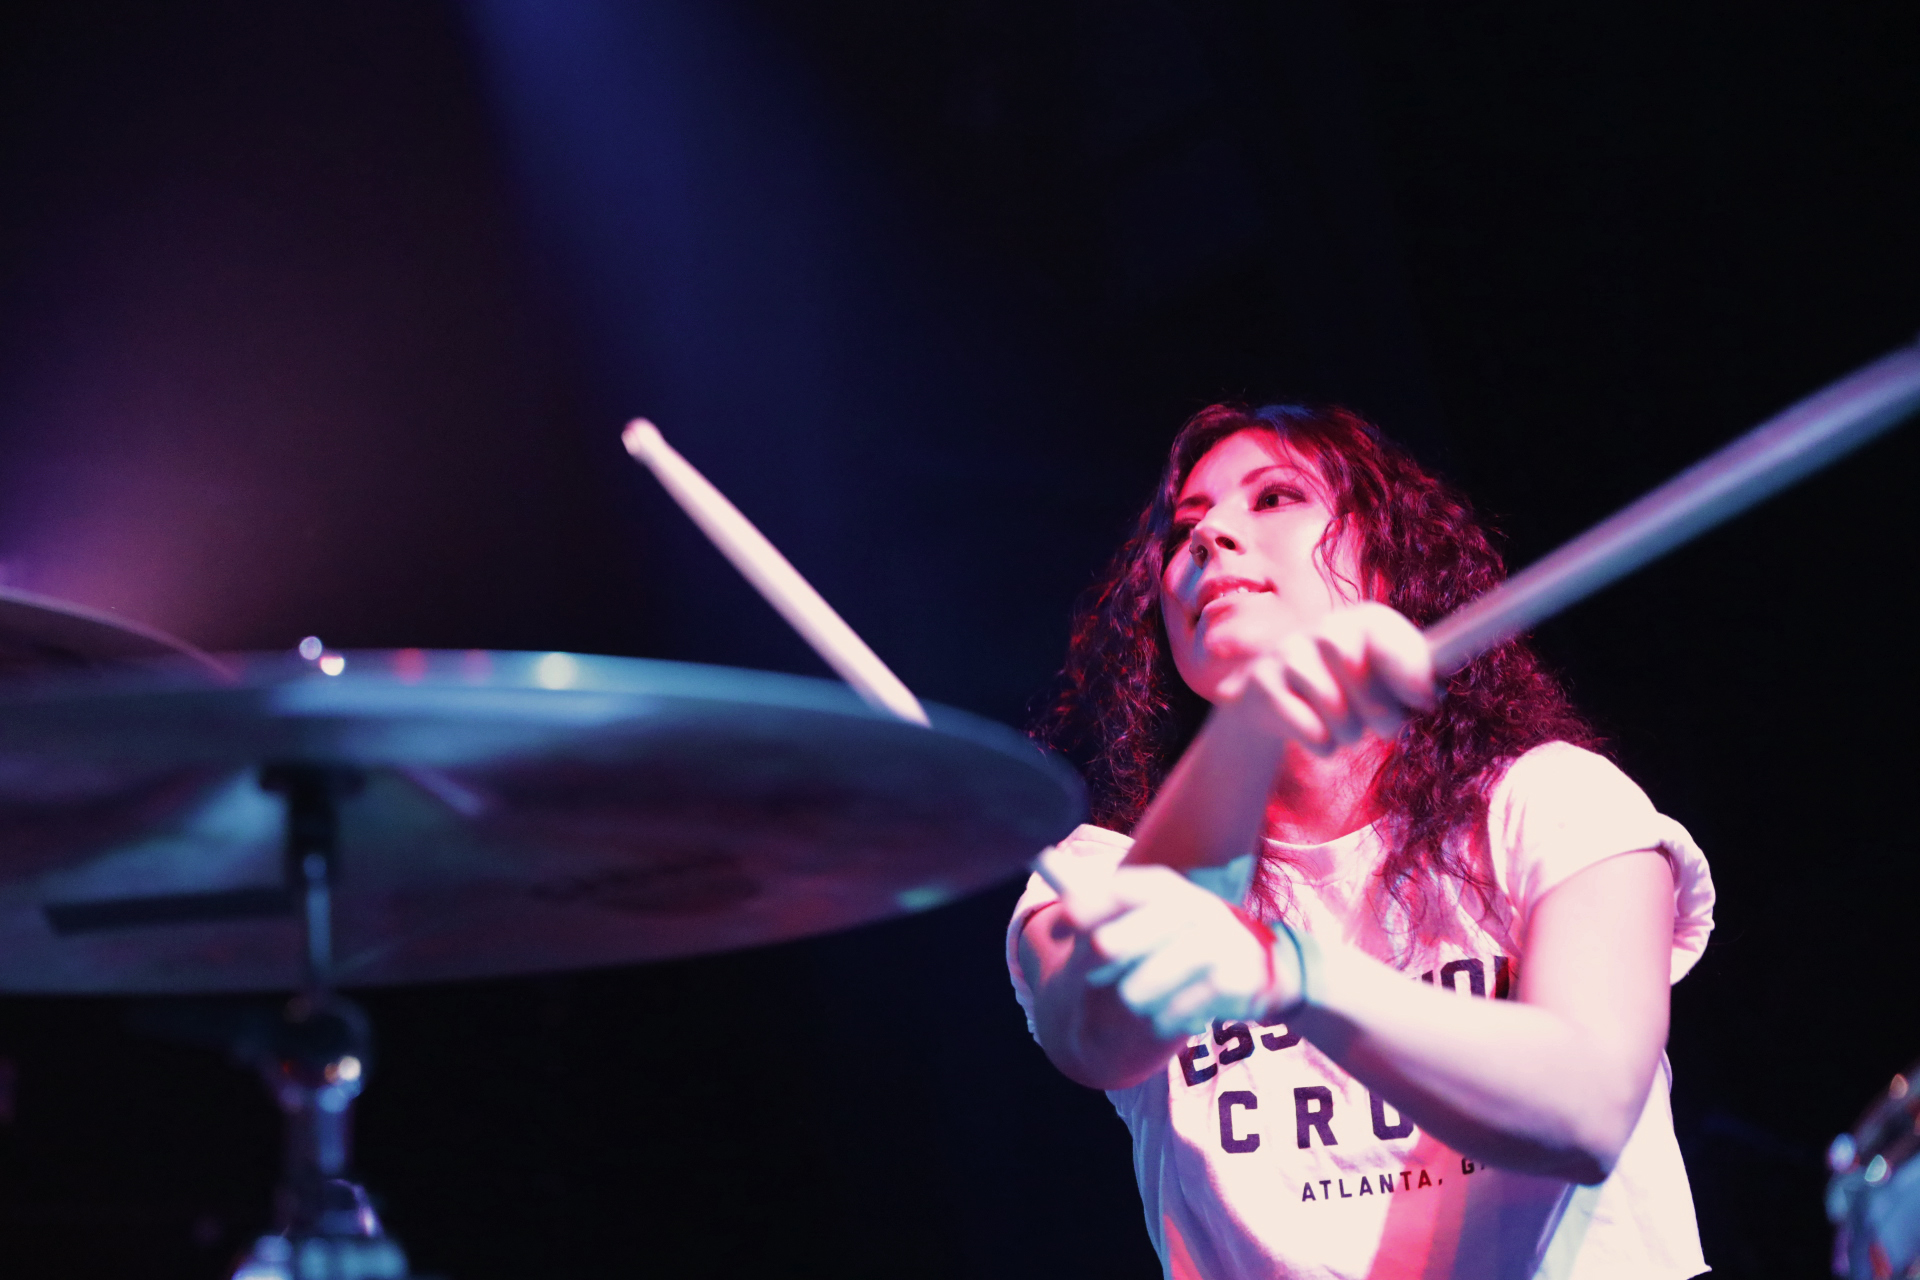 Jess, drummer for Tessa Violet. Photo: @Lmsorenson Photography